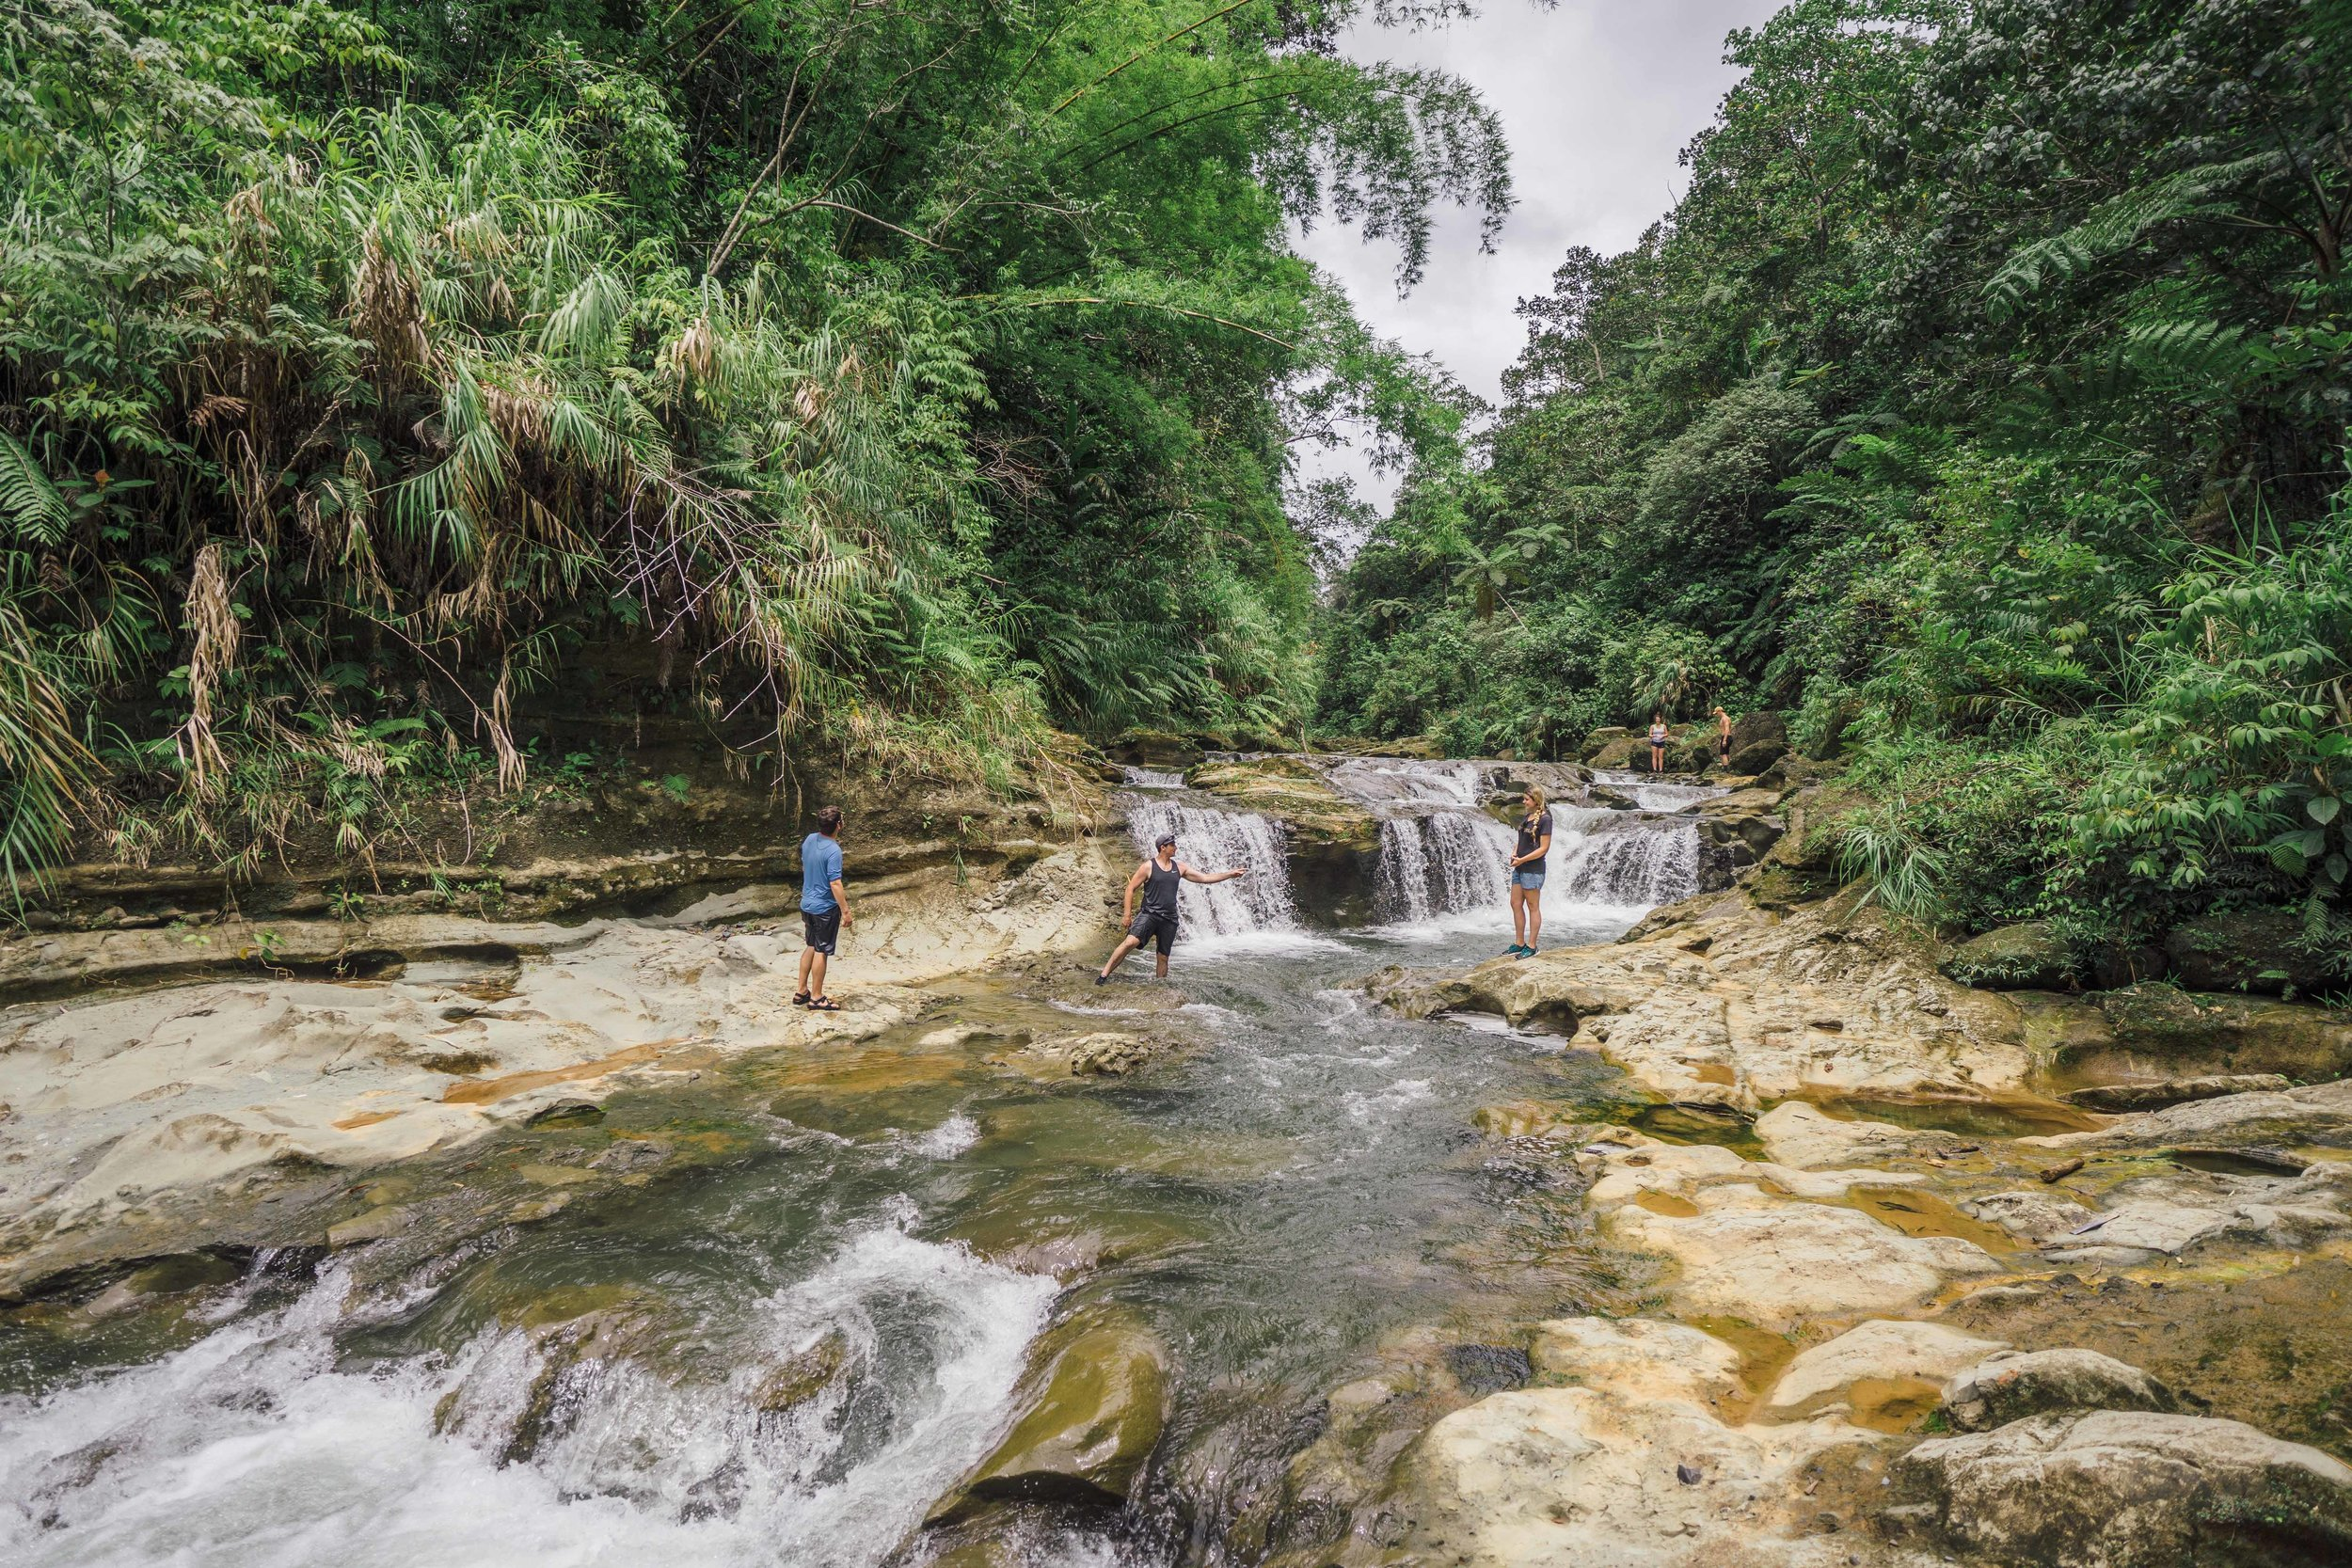 - Exploring one of the side rivers with natural swimming pools while lunch by the Navua River was being set up by our guides.